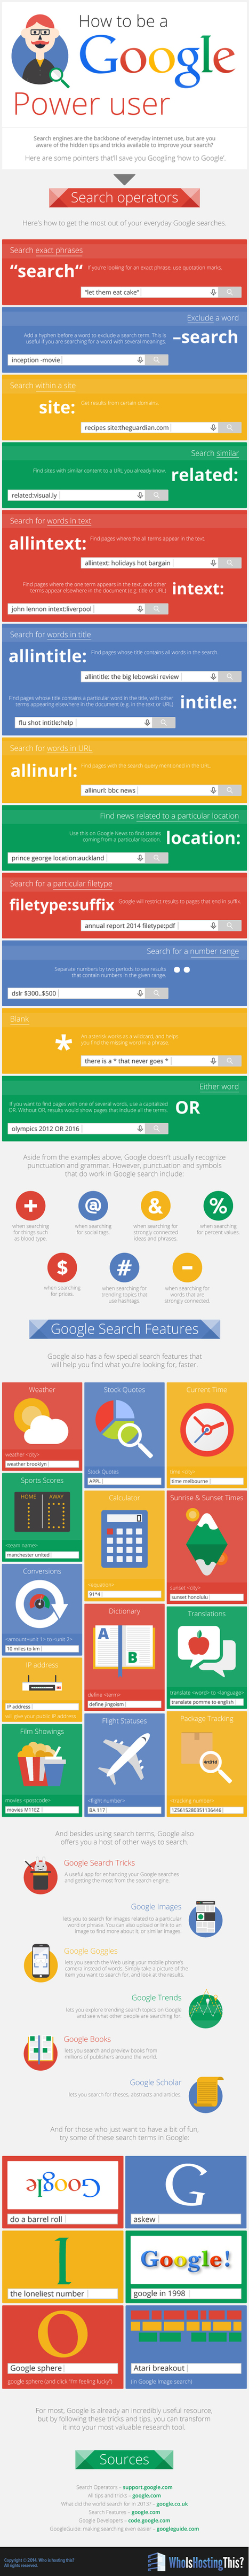 Little Known Ways To Power Your Google Search (Infographic) | eLearning Project Management | Scoop.it